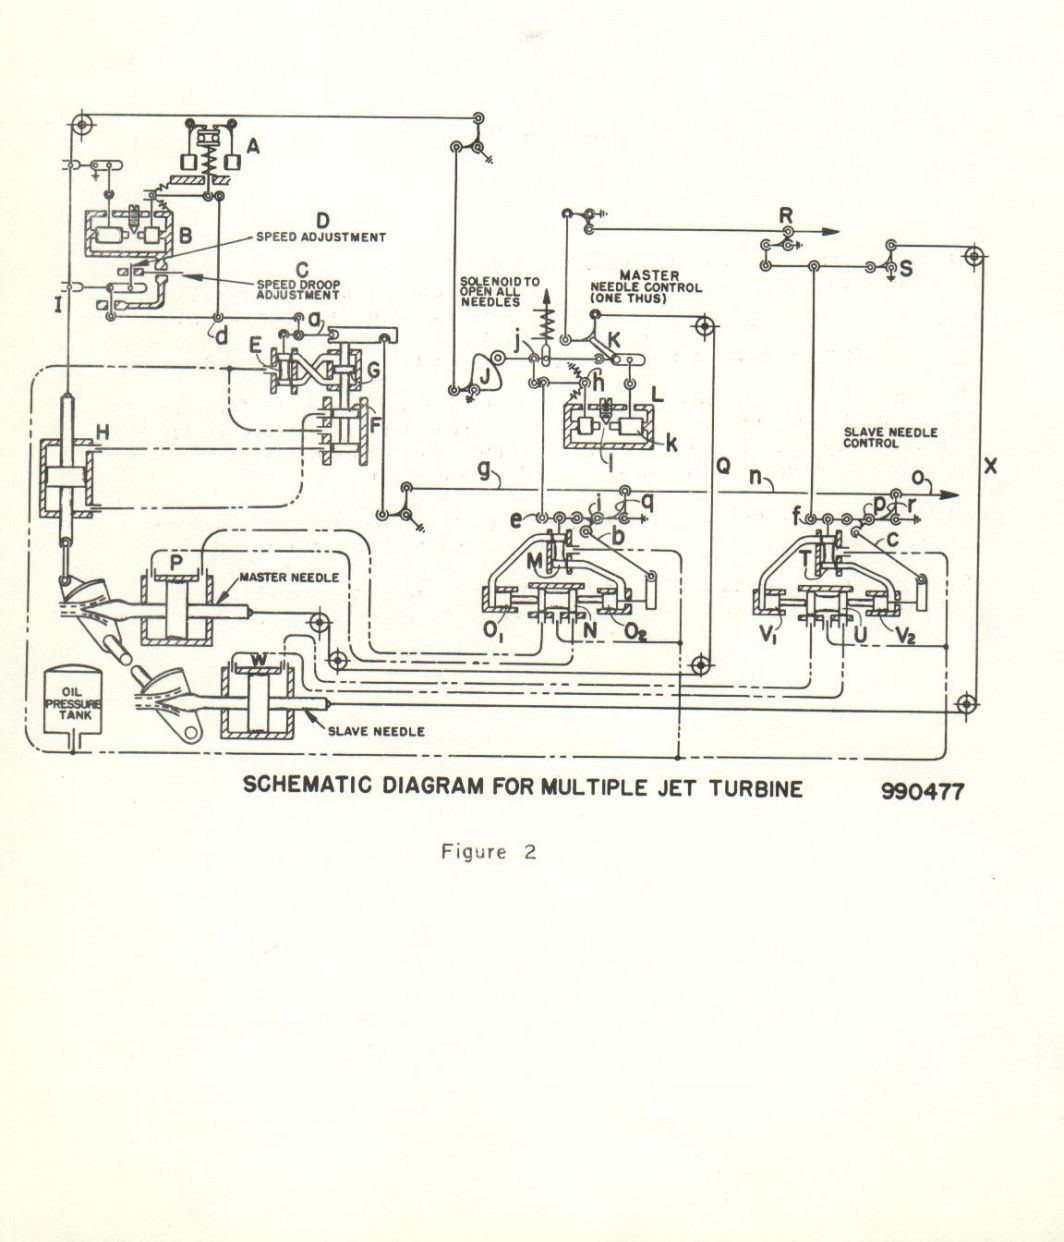 Woodward Governor Companys Cabinet Actuator For Multiple Nozzle Schematic Diagram Impulse Turbine Control Drawing